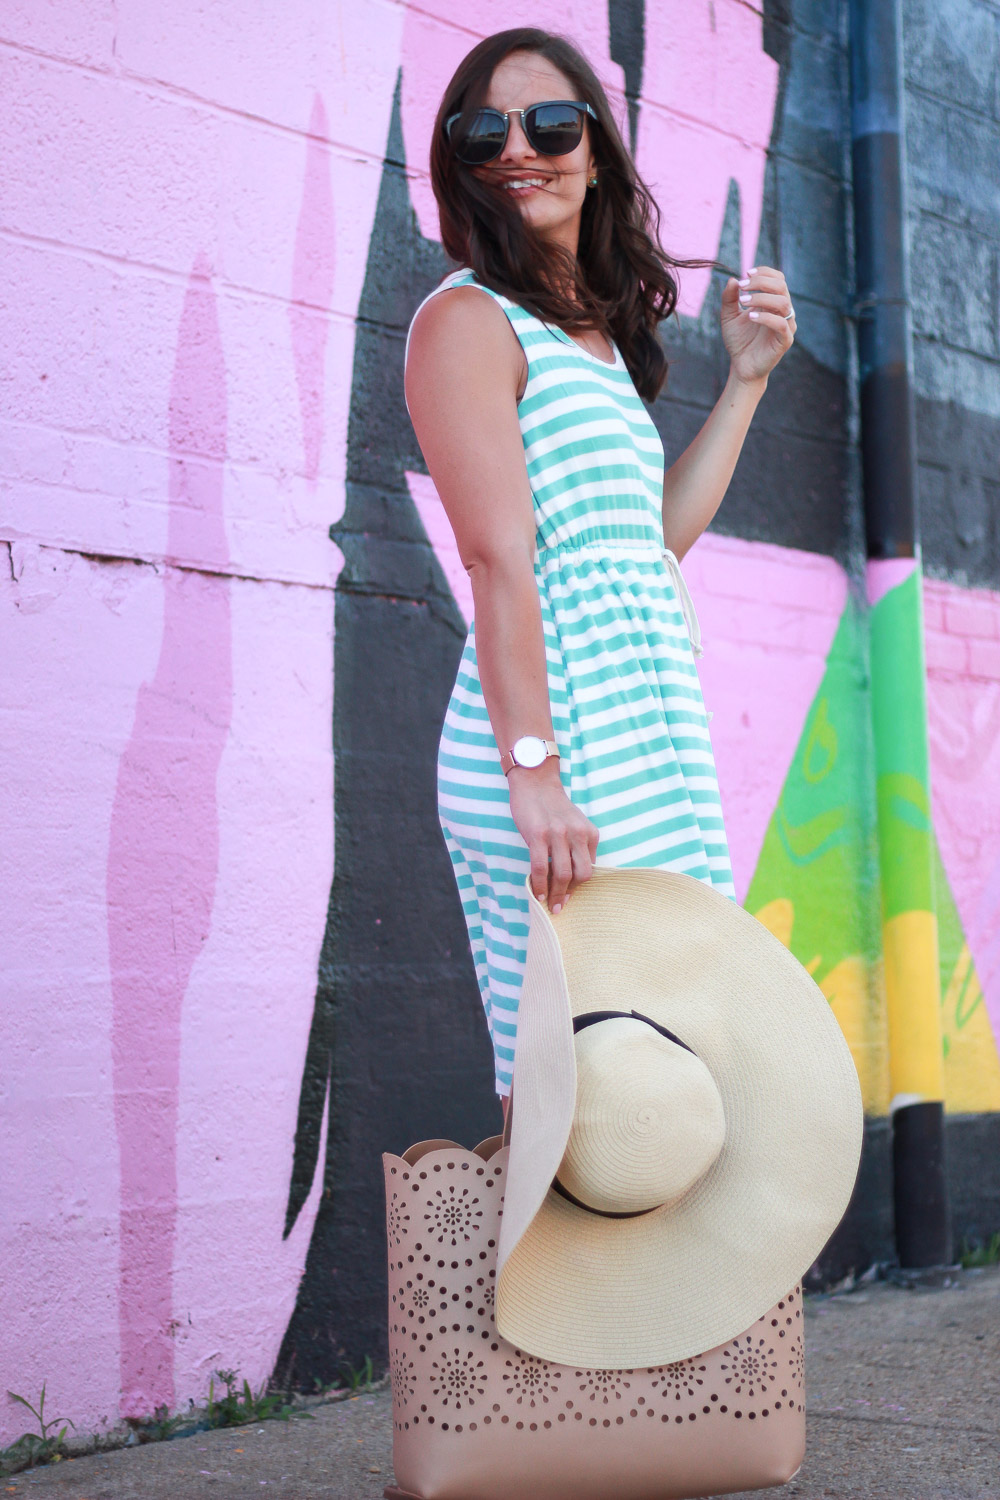 Trendy Styles For Moms, Striped Dress Outfit